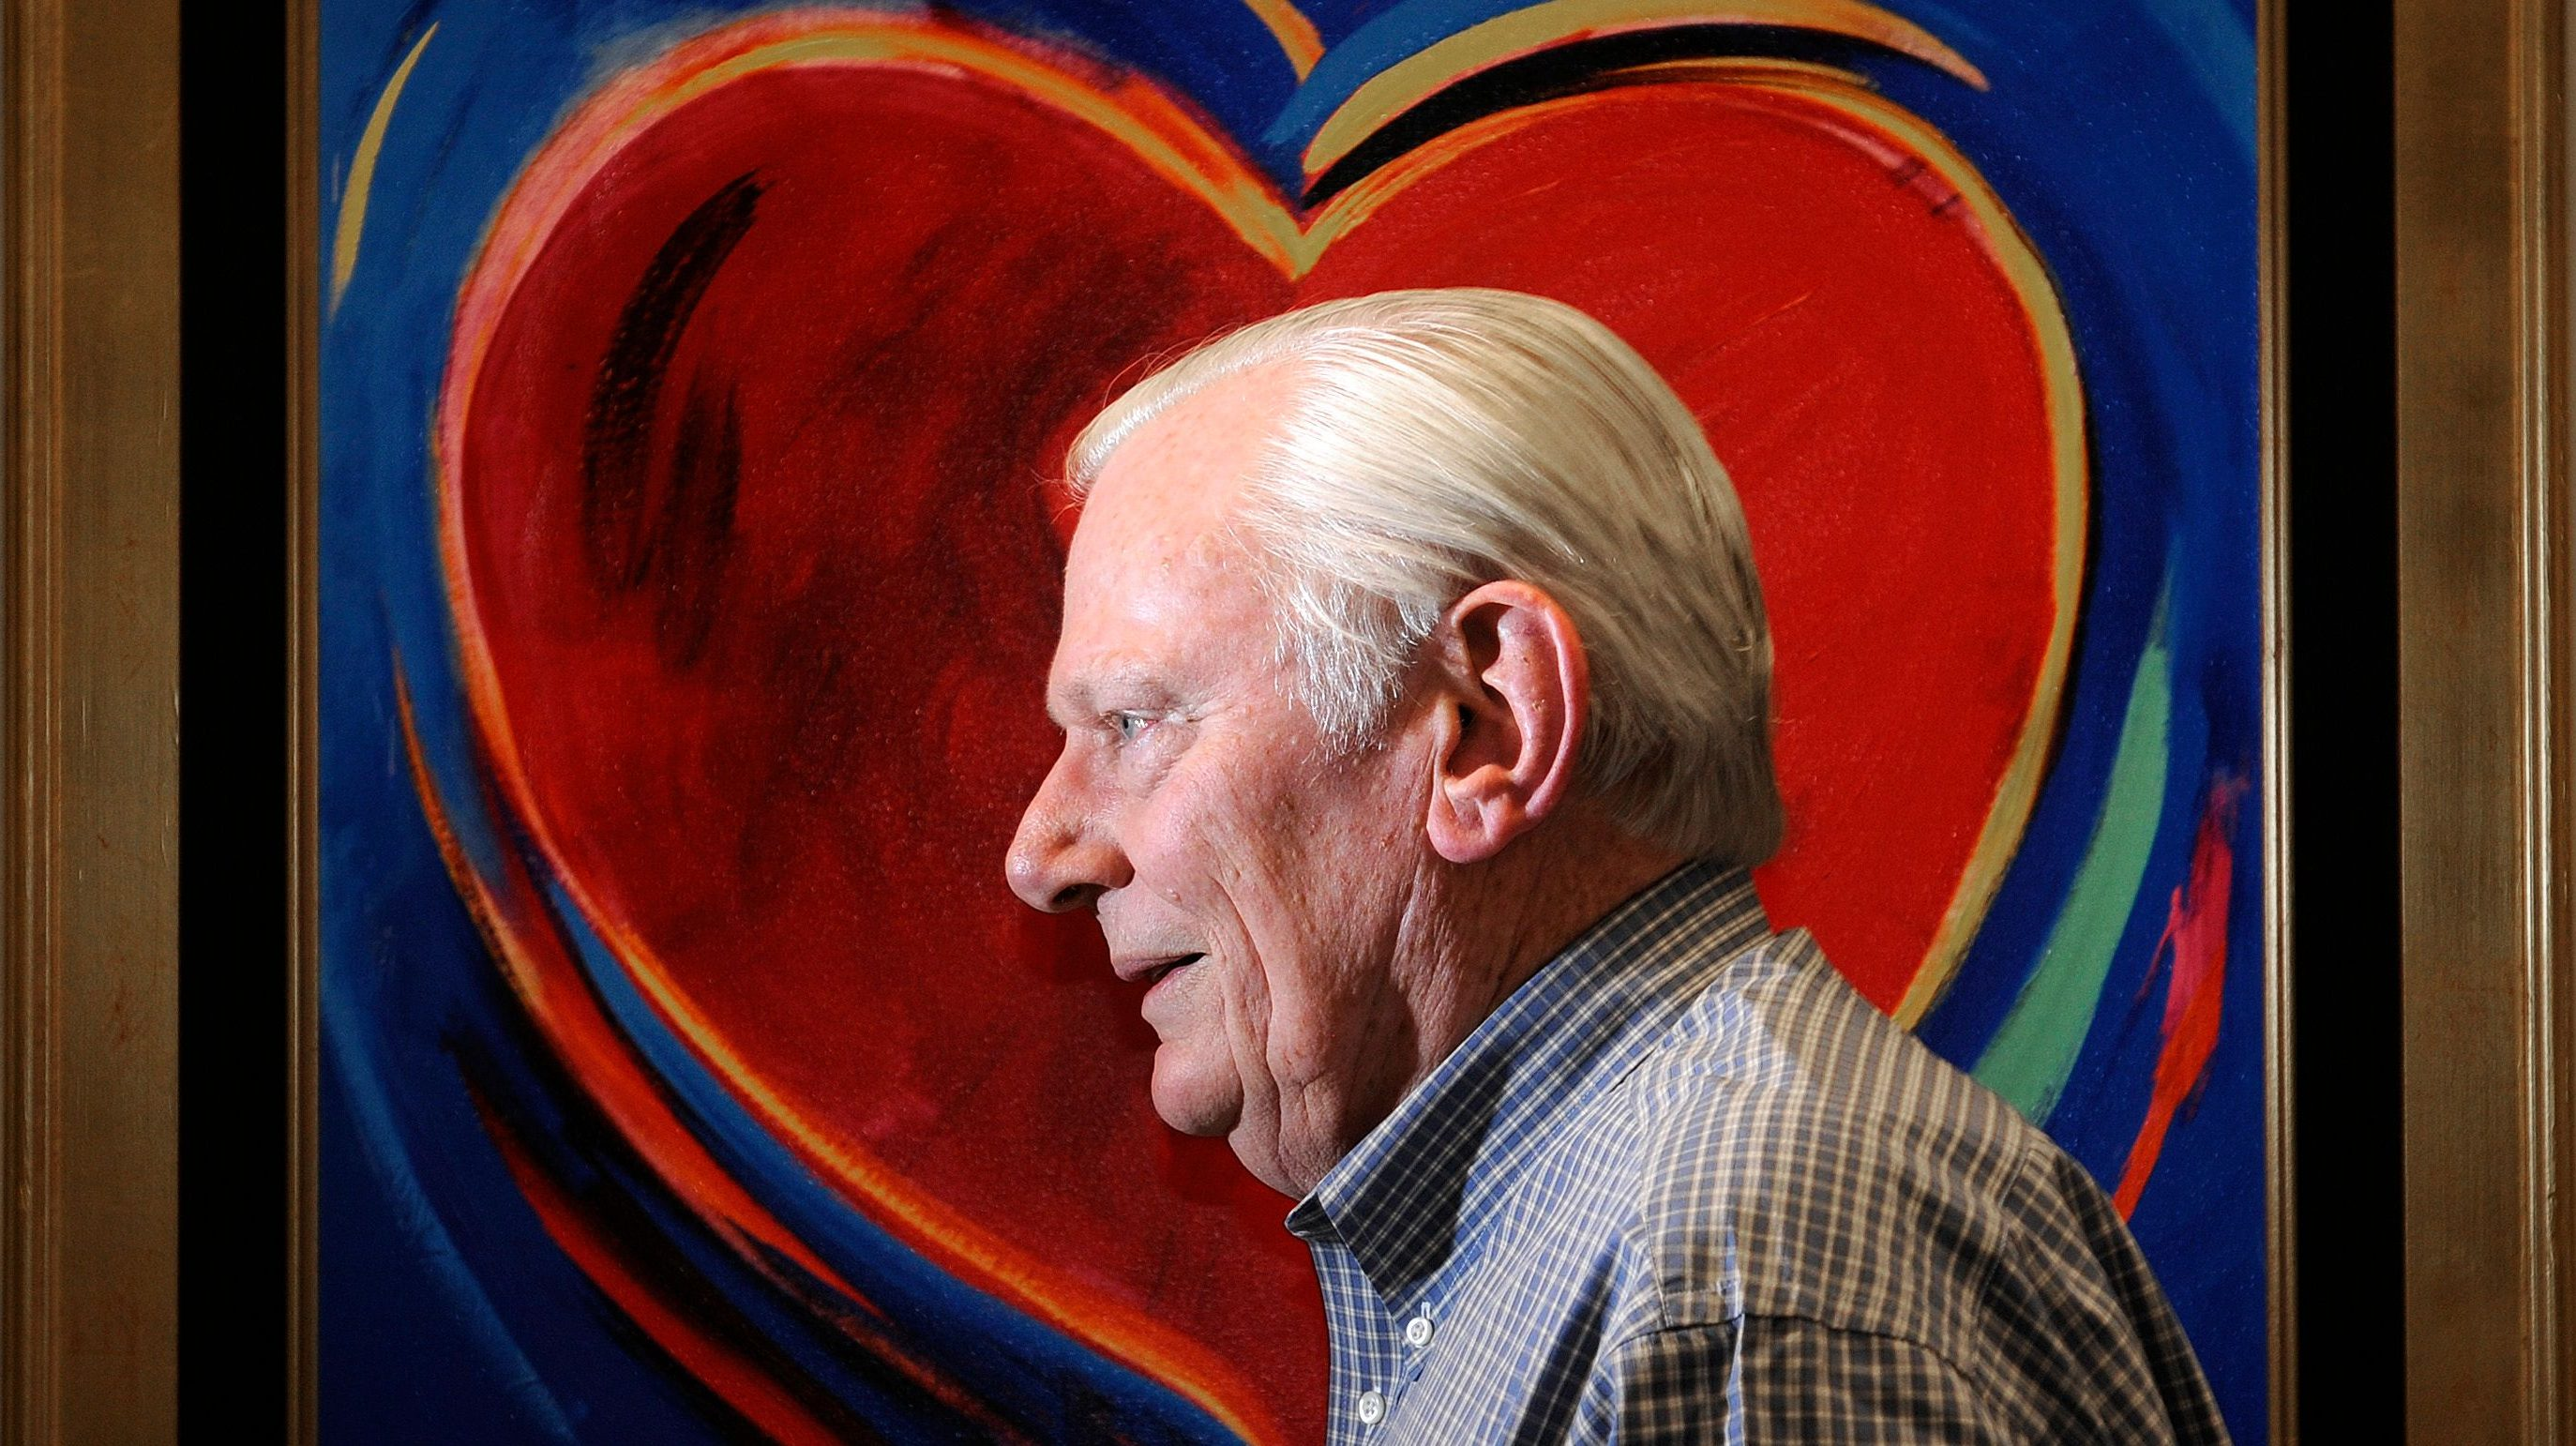 Southwest Airlines founder Herb Kelleher in 2011